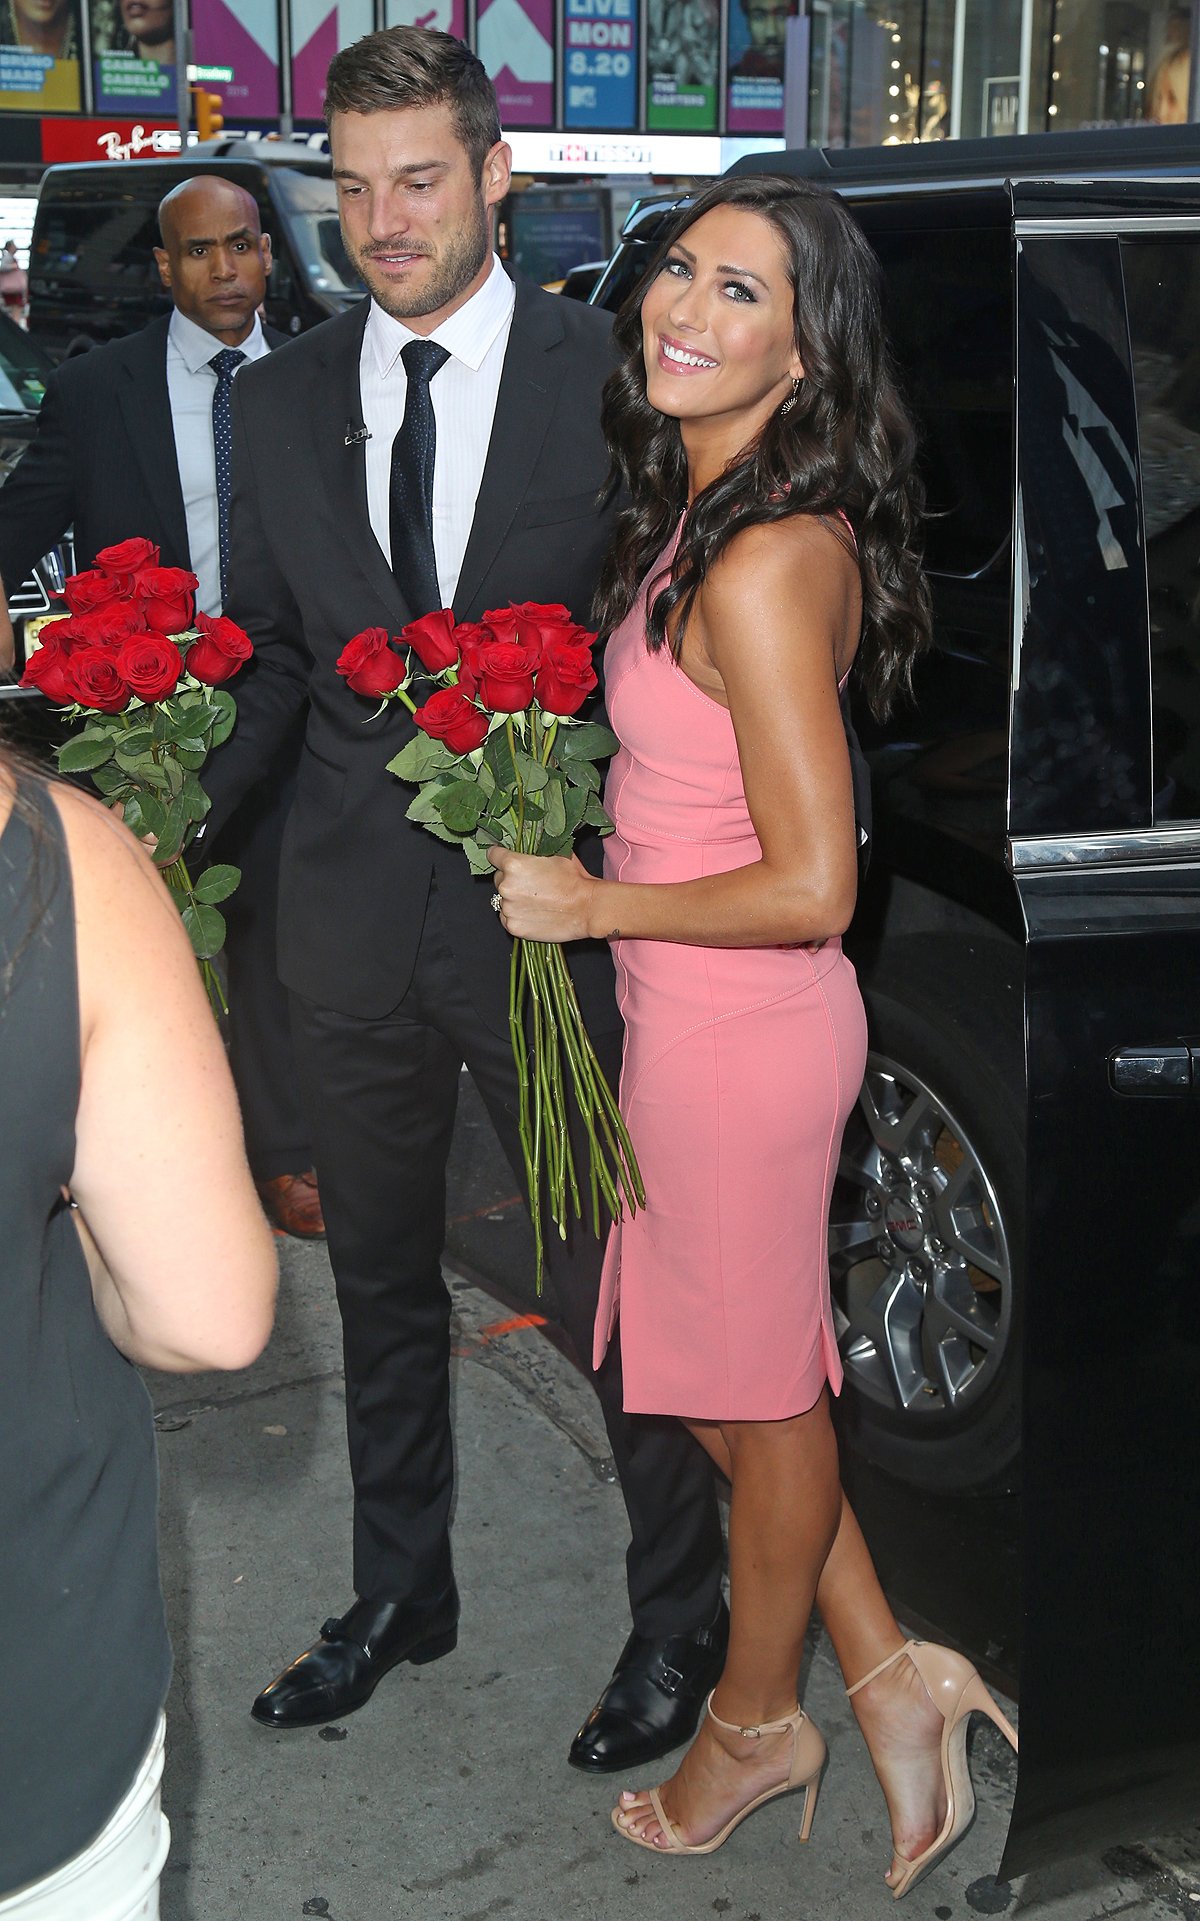 The Bachelorette Becca Kufrin and new Fiance Garrett Yrigoyen at 'GMA'